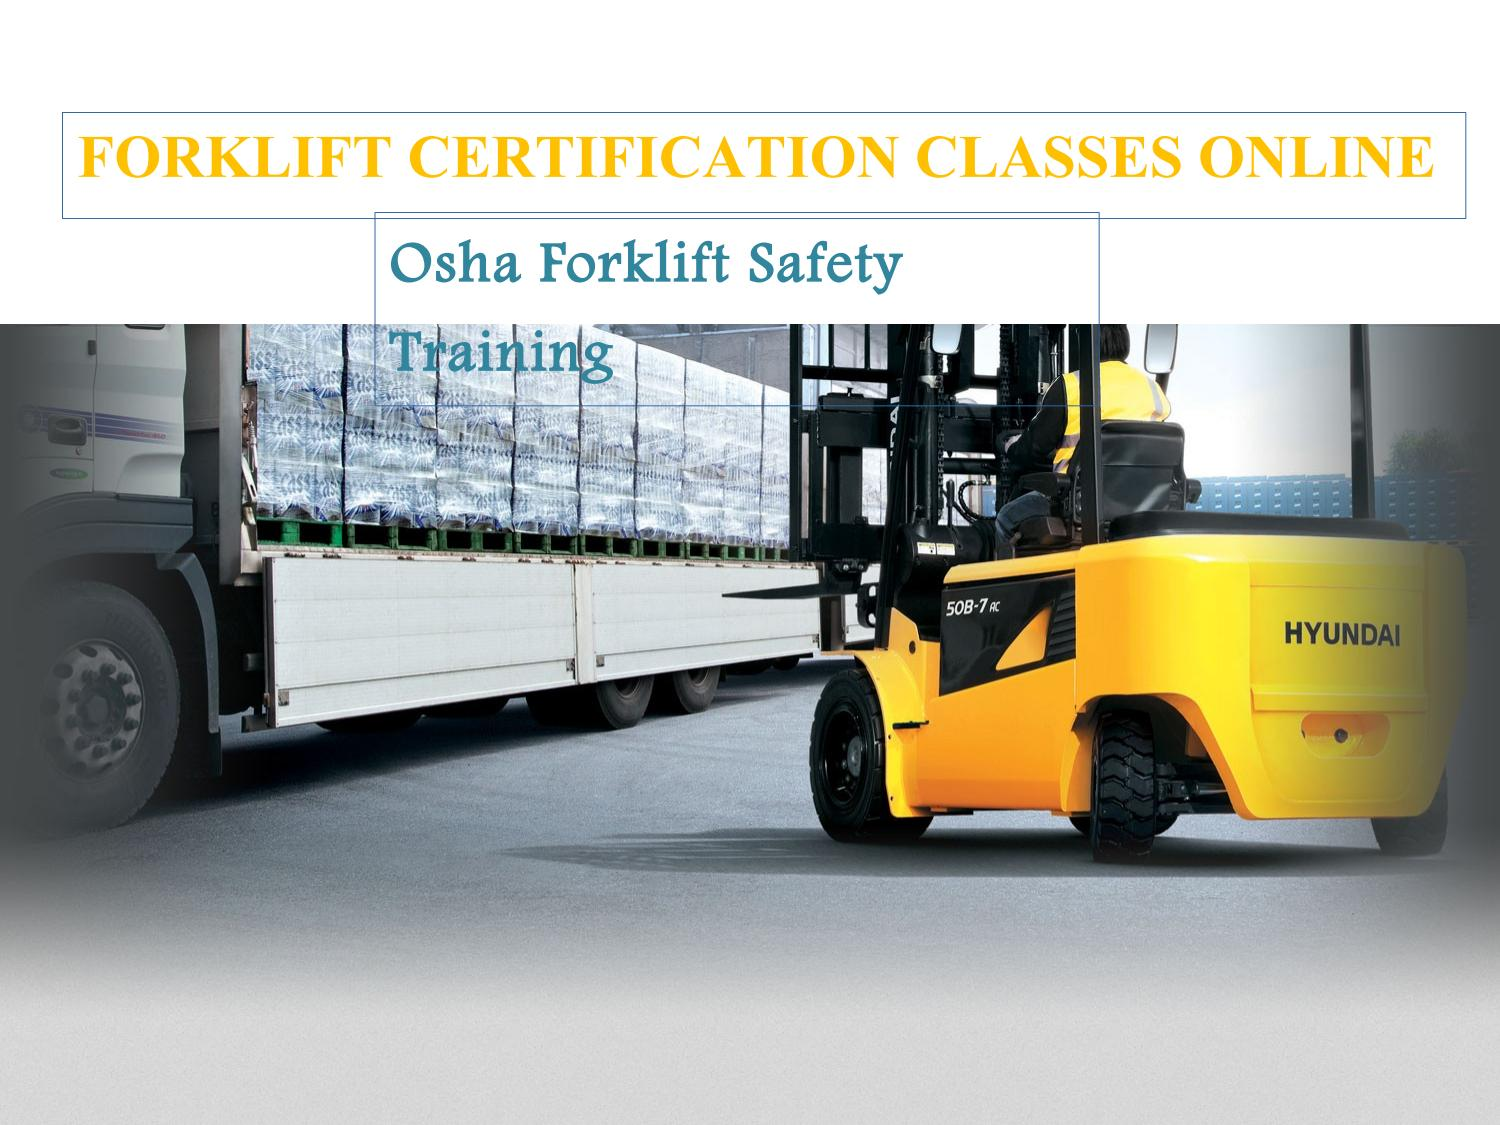 Forklift certification classes online in california by superior forklift certification classes online in california by superior forklift training issuu xflitez Images